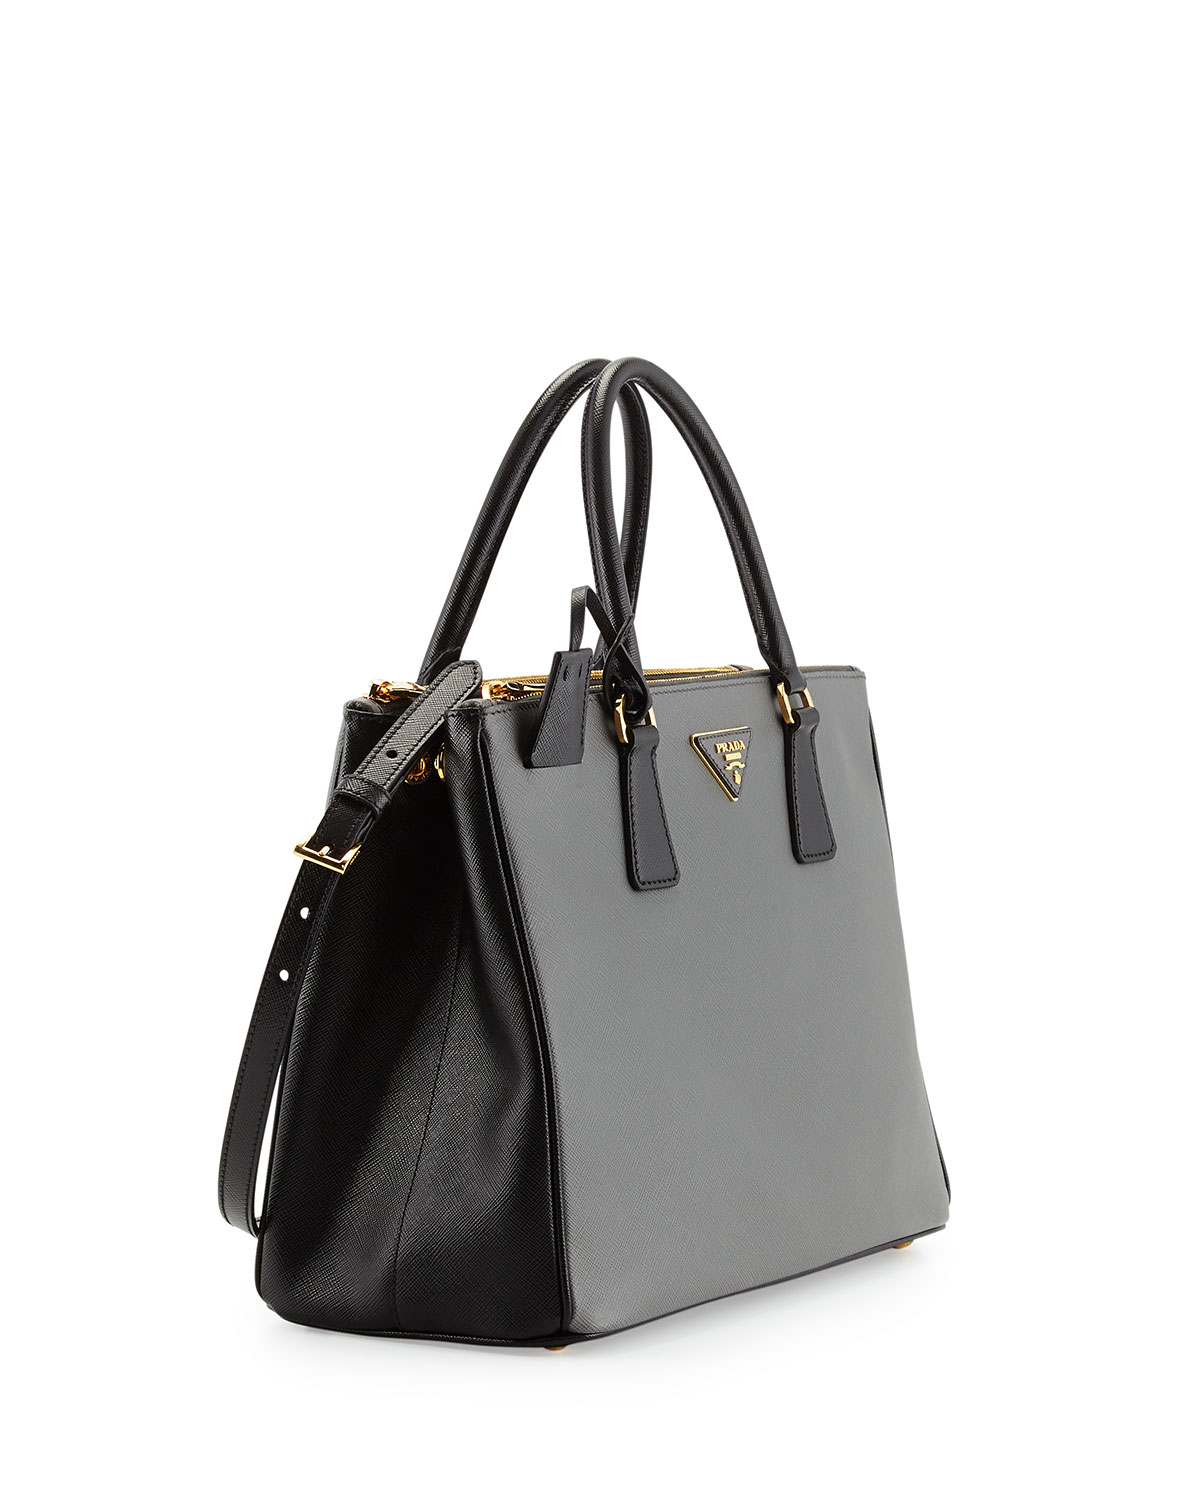 83b1df6d2c10 ... spain lyst prada saffiano lux bicolor double zip tote bag in gray 0d8e0  89692